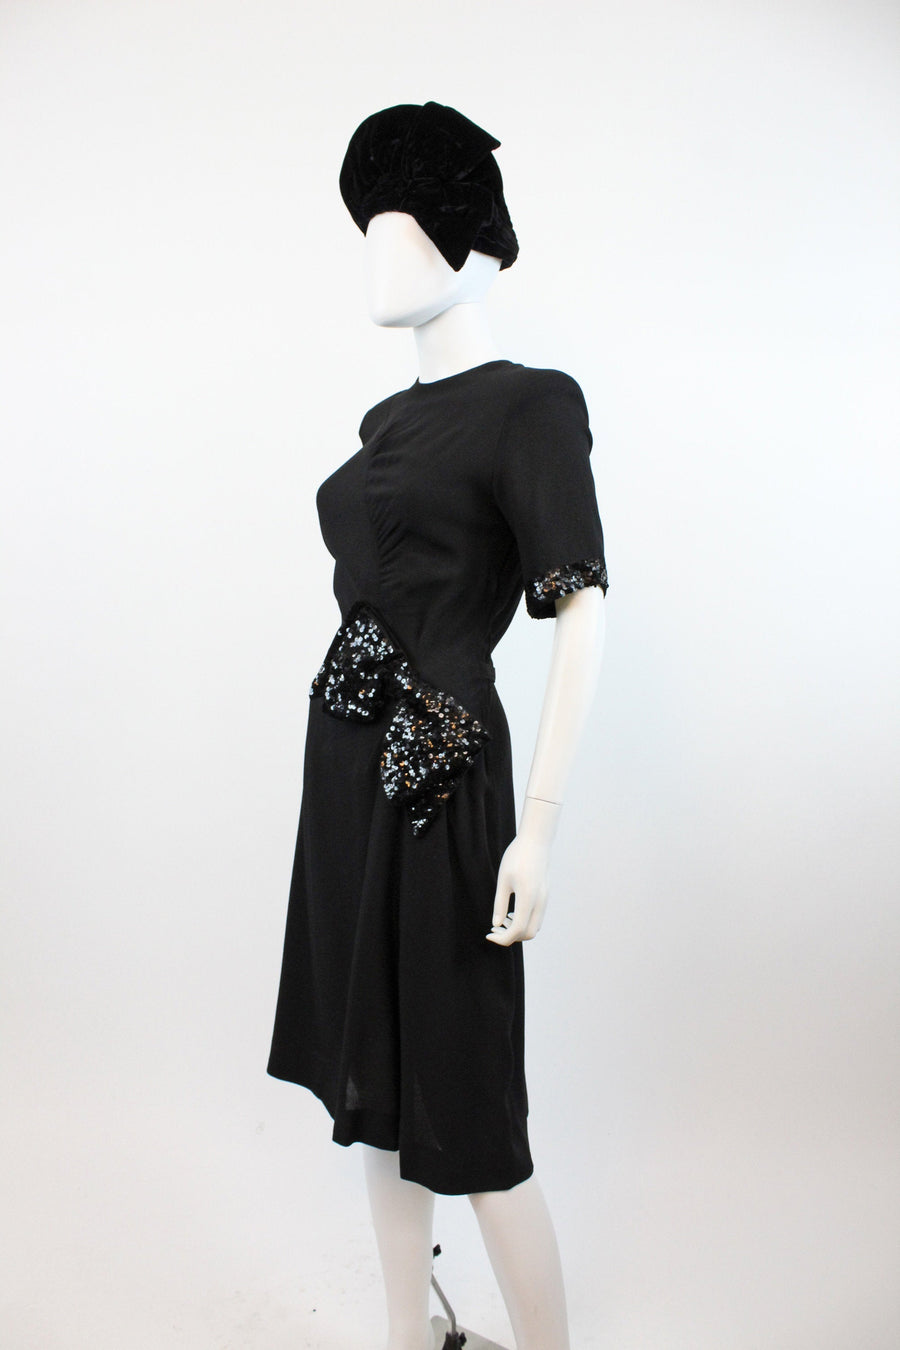 1940s rayon dress sequins small | vintage bow dress | new in